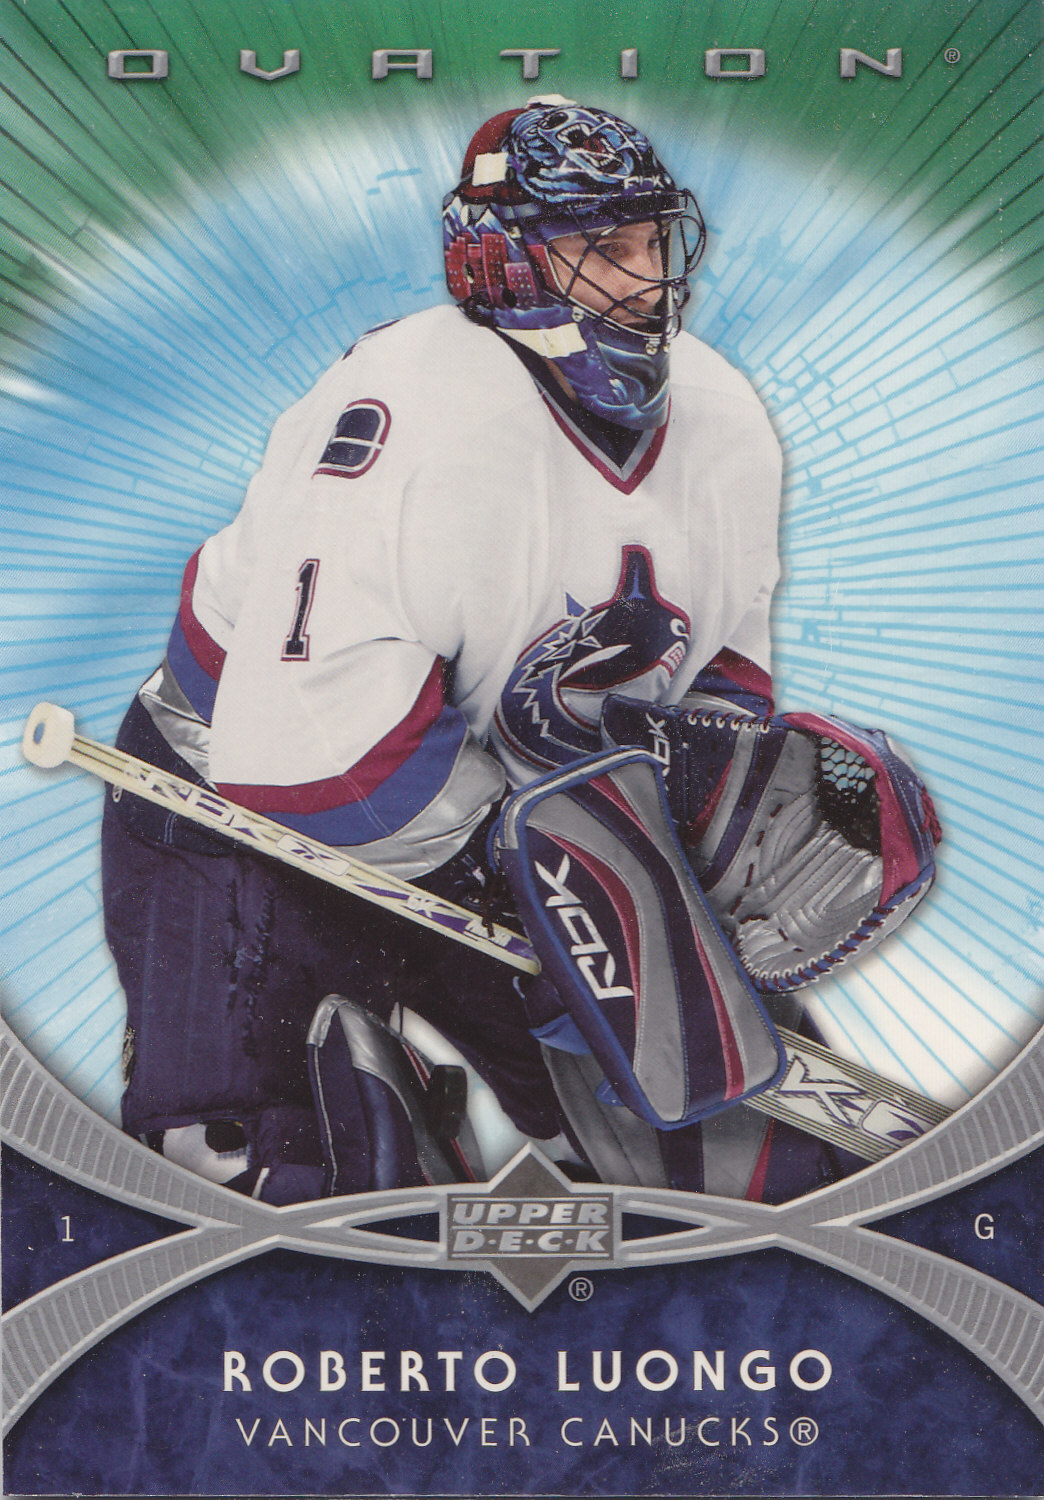 2007-08 Upper Deck Ovation 3x5s XL3 ROBERTO LUONGO